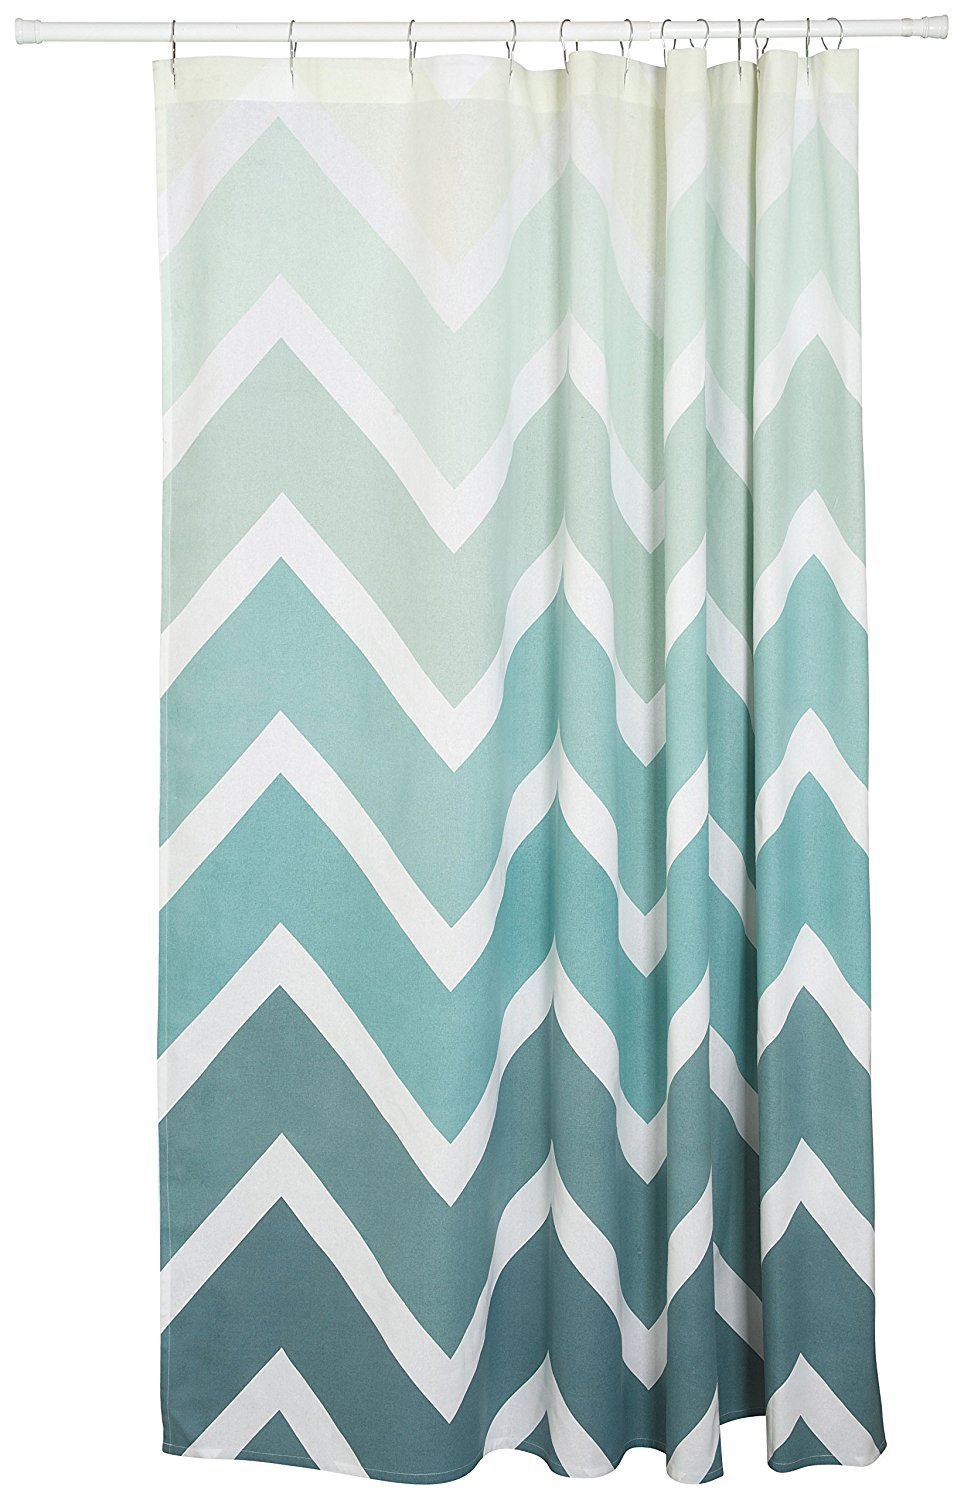 Memory Home Simple Style Shower Curtain Chevron Print Blue